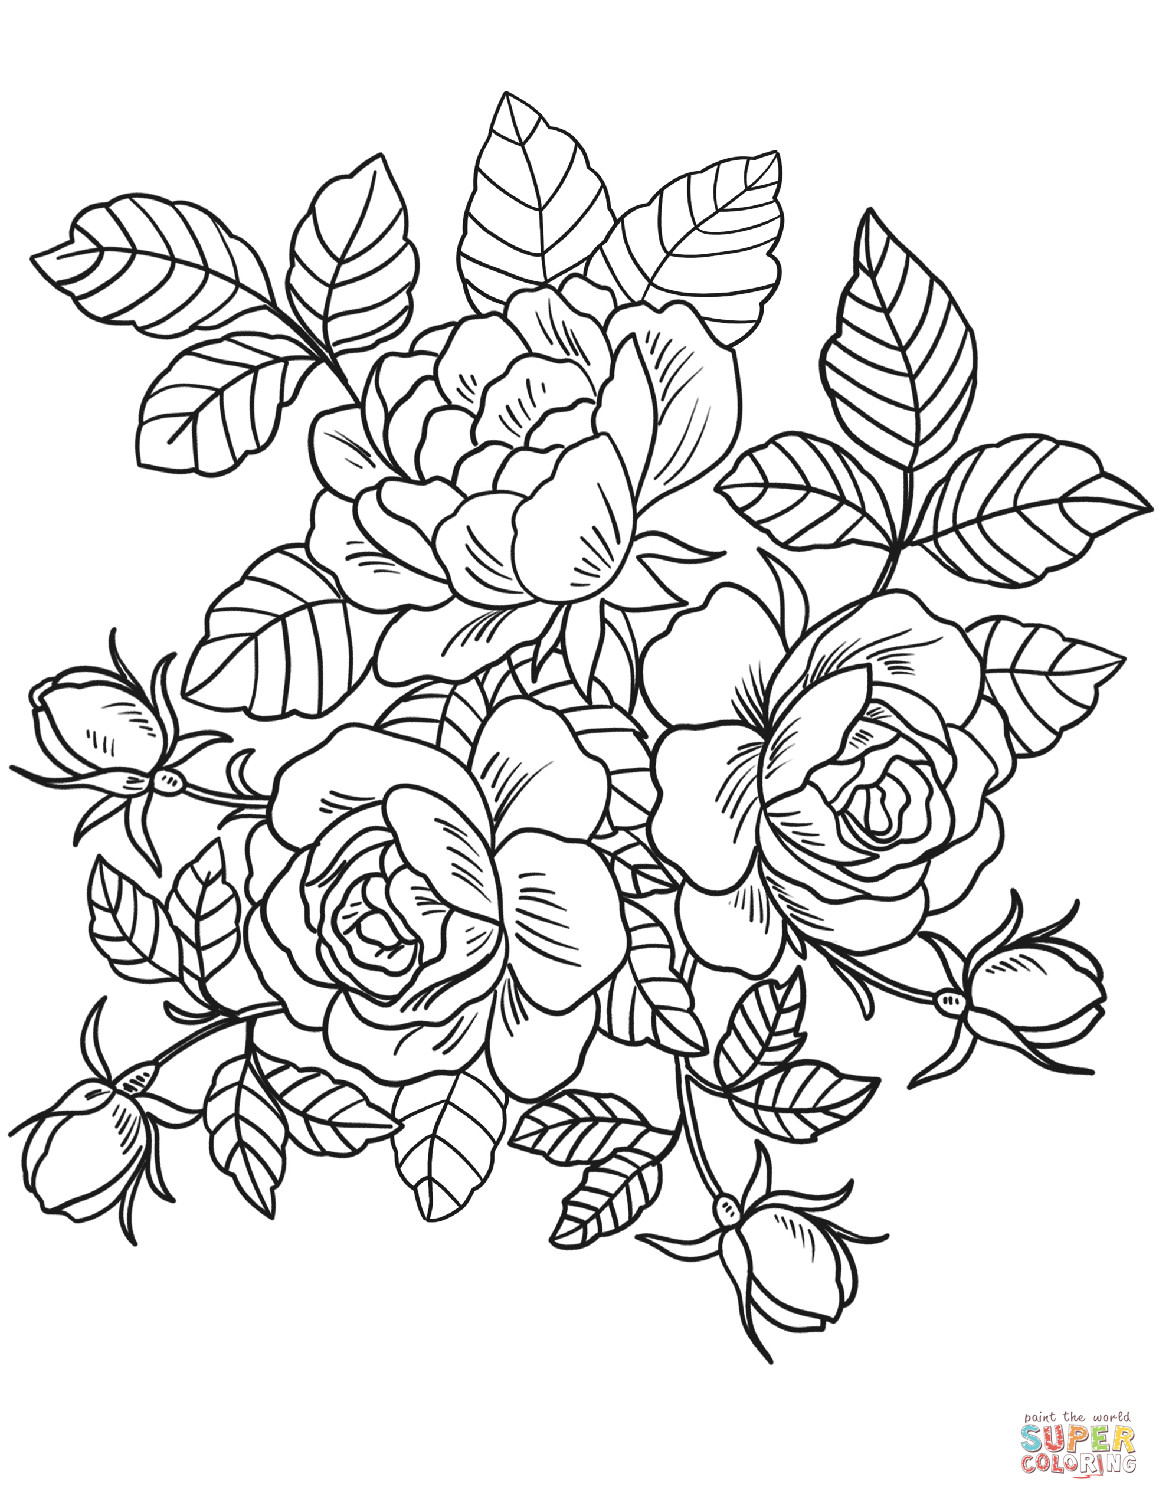 Best ideas about Free Coloring Pages Roses . Save or Pin Roses Flowers coloring page Now.